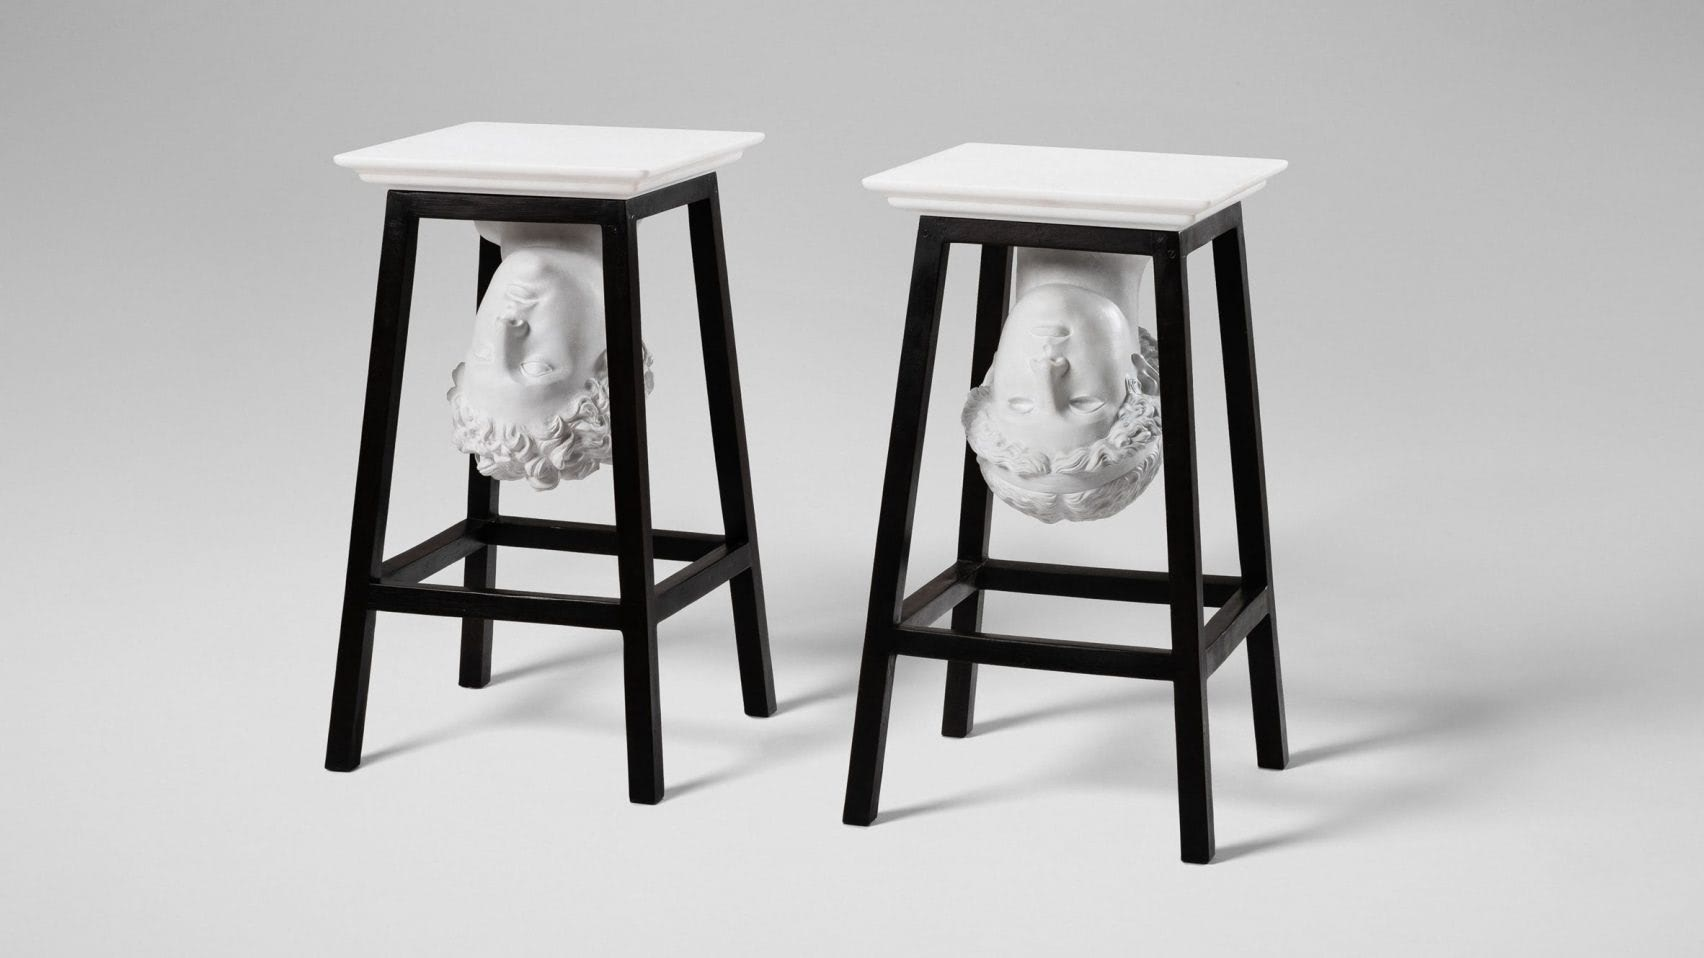 sebastian-errazuriz-exhibition-design-furniture-accessories-_dezeen_2364_heroa-1704×958-1